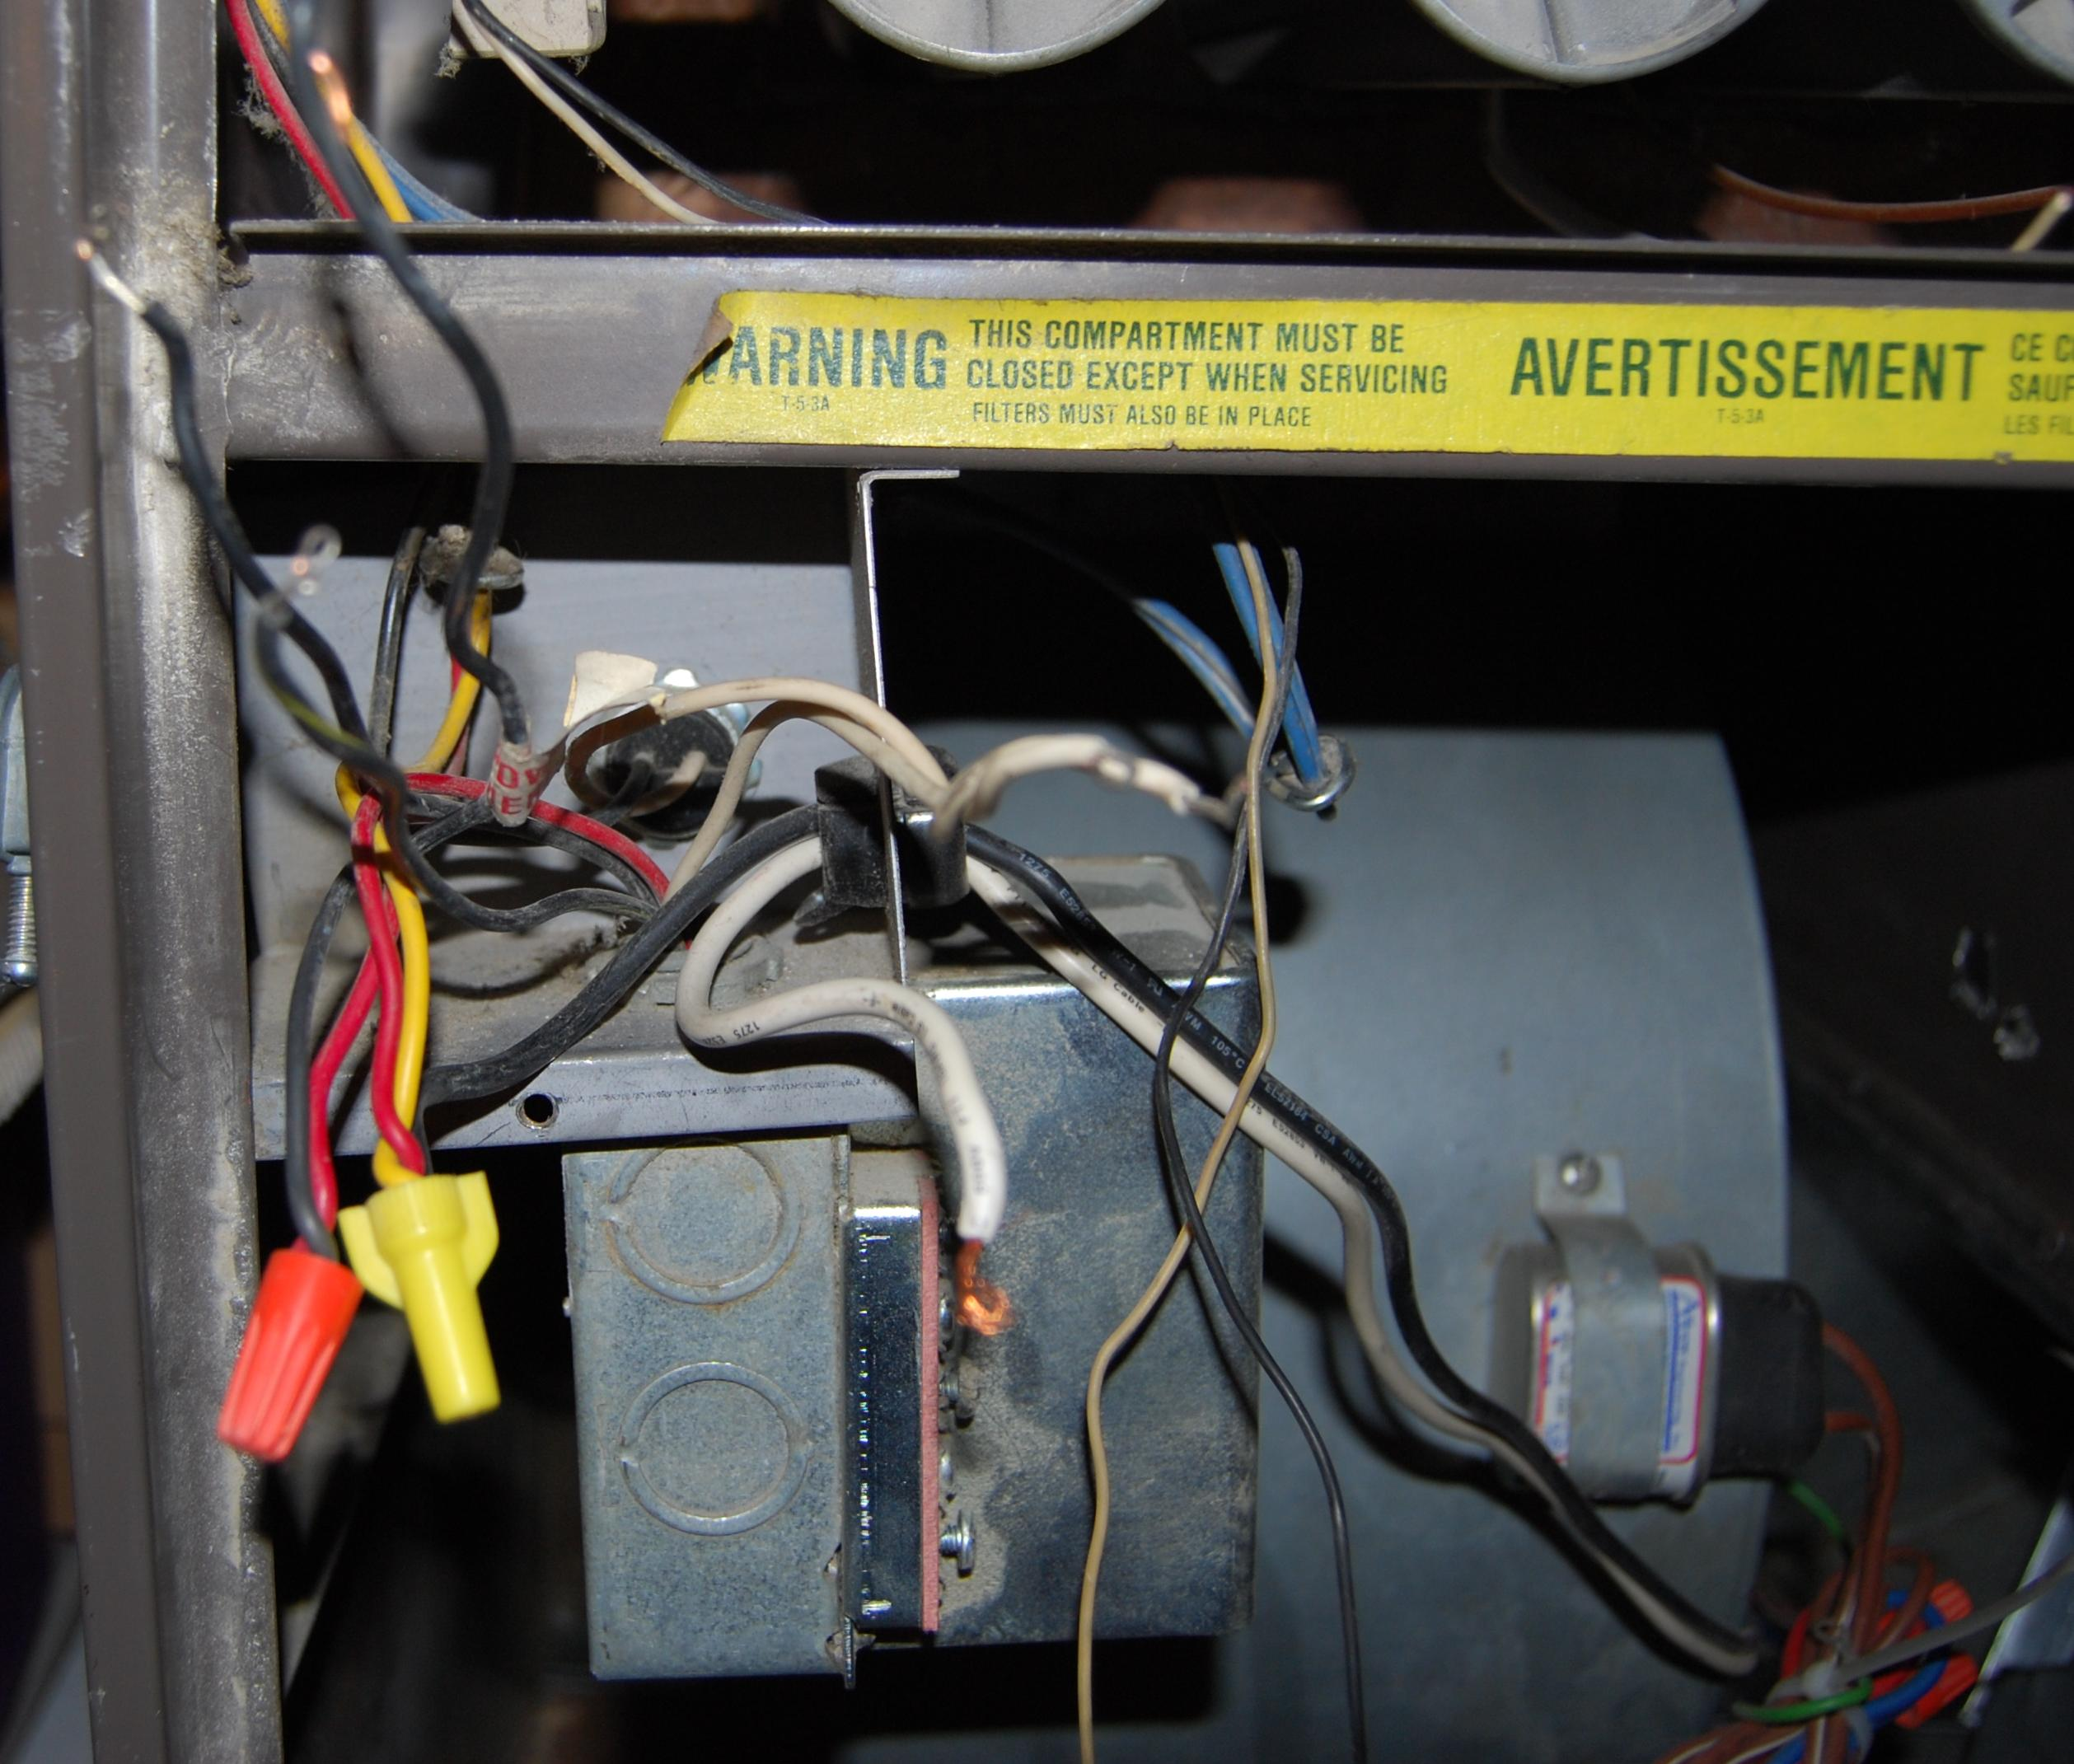 Old Lennox Furnace Wiring Diagram